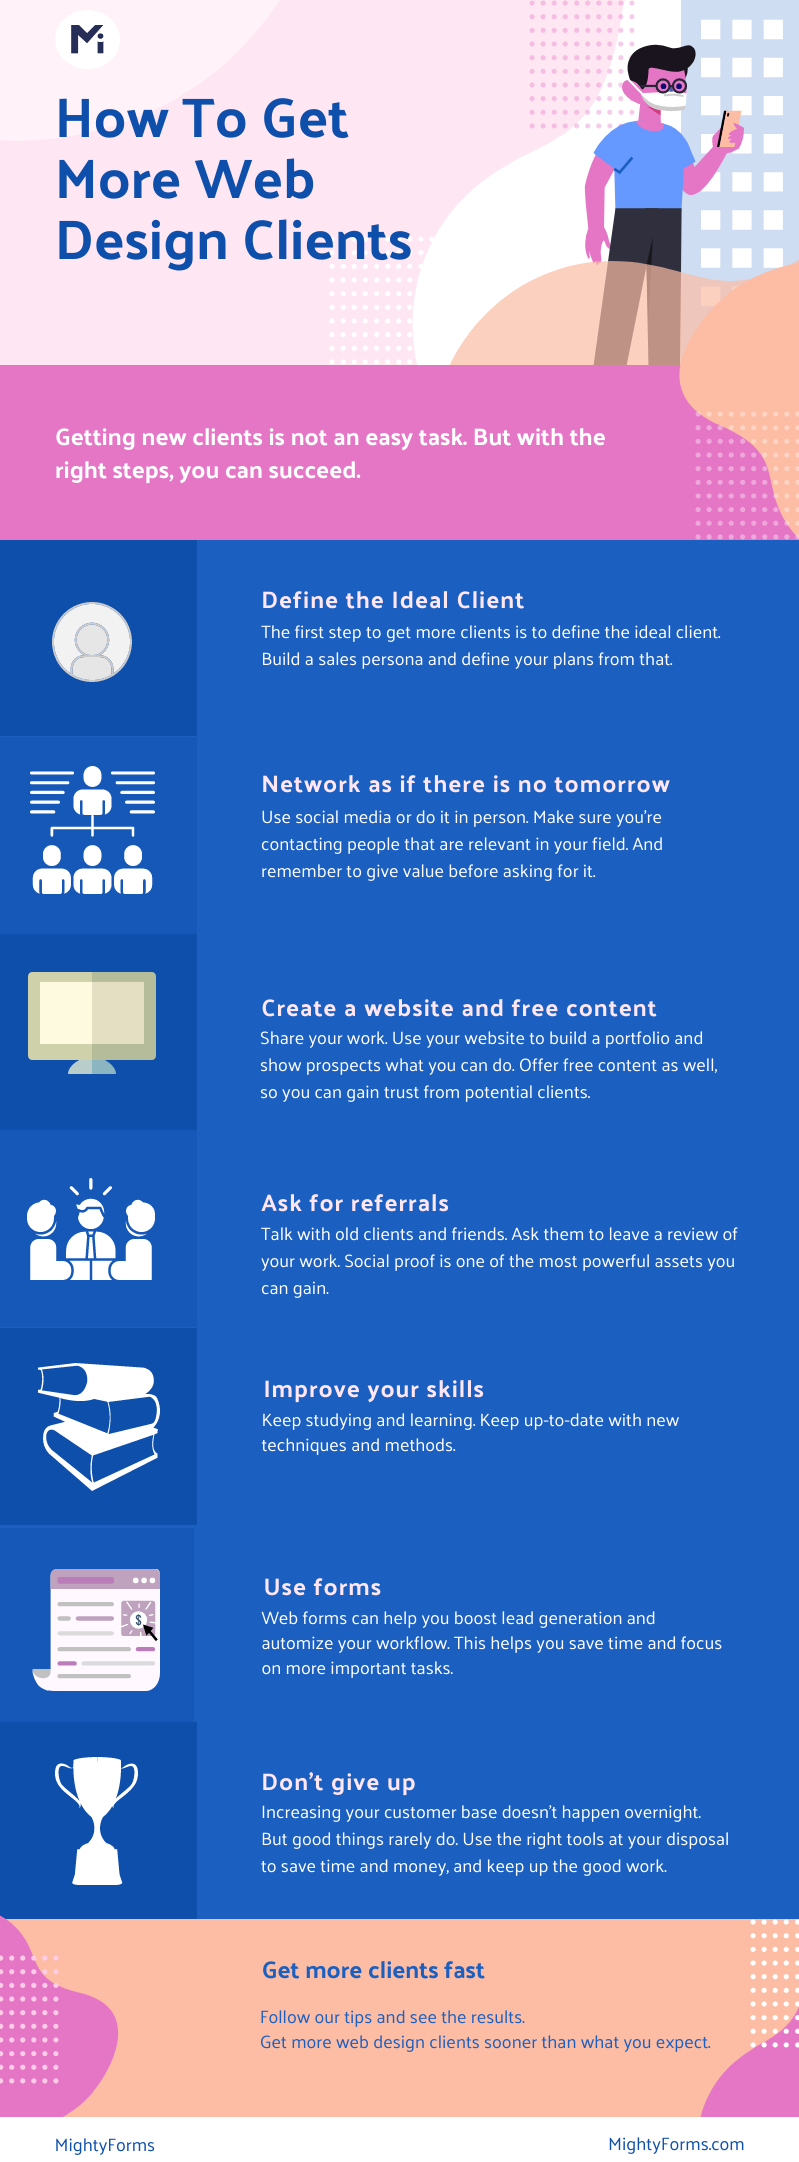 how to get more web design clients fast Infographic - MightyForms